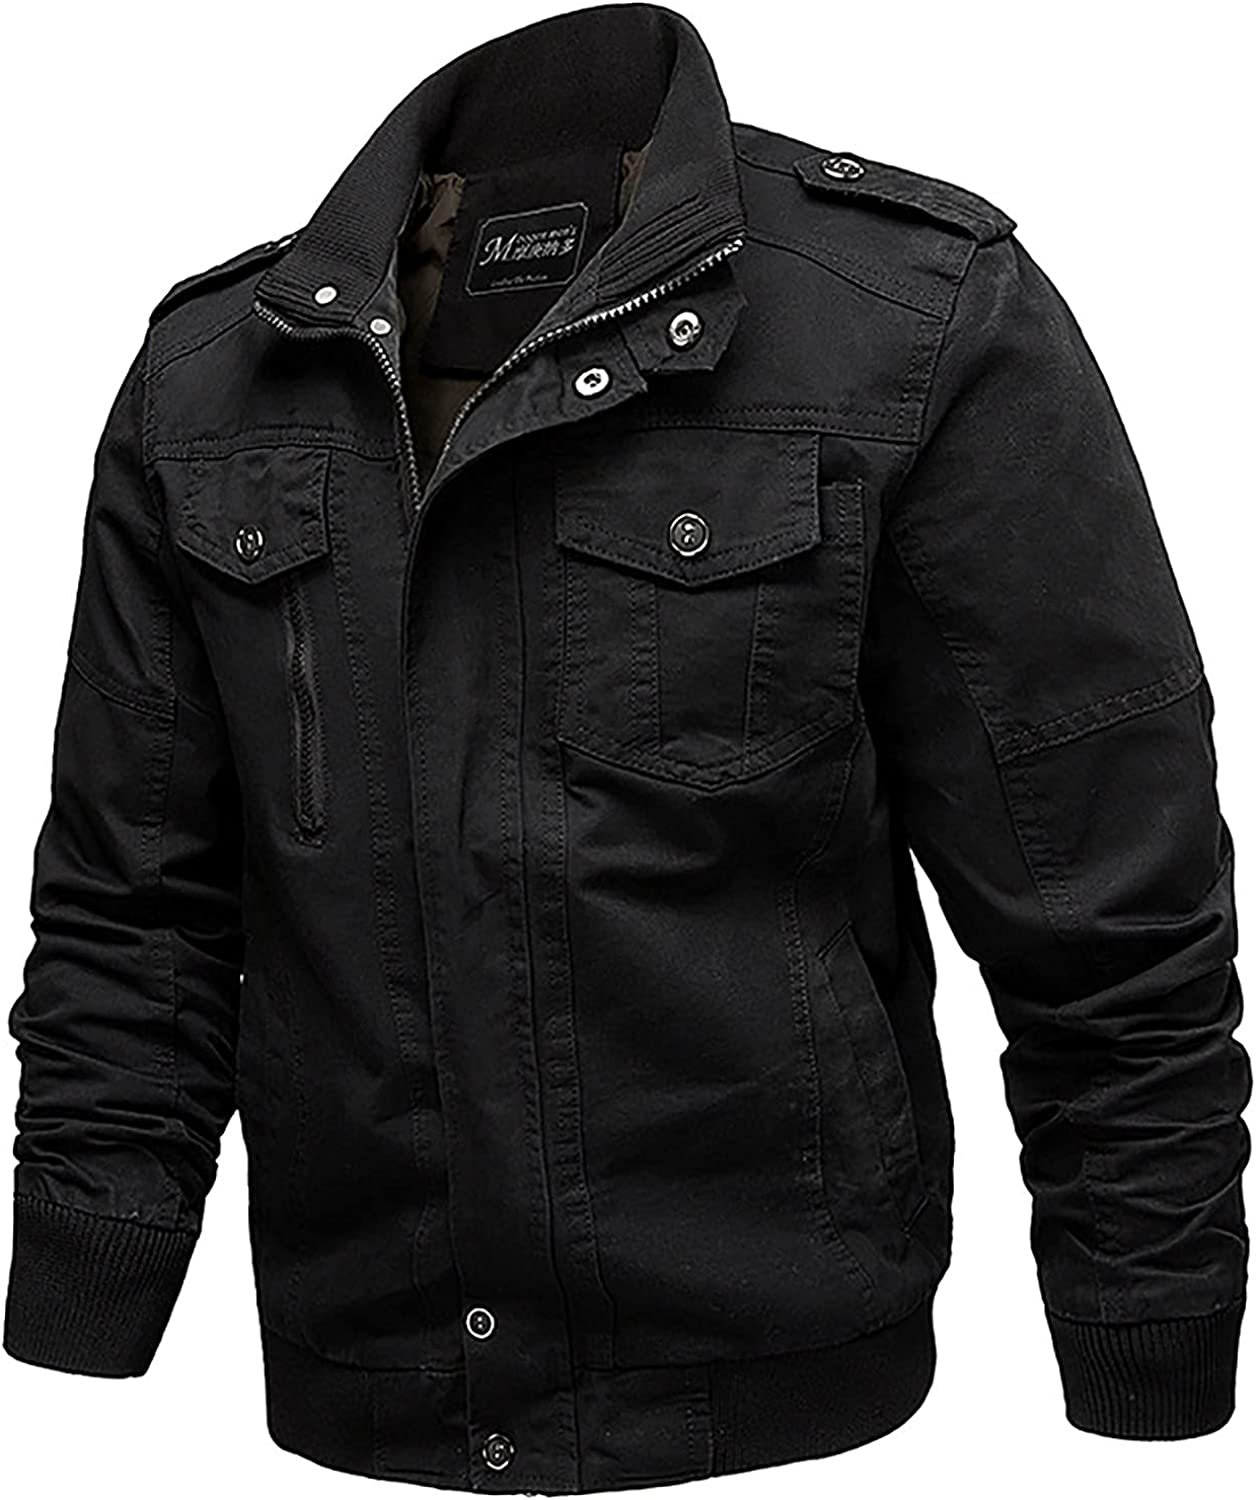 Men's Cotton Jackets Military Cargo Bomber Working Jackets with Multi Pockets Hiking Skiing Warm Coats